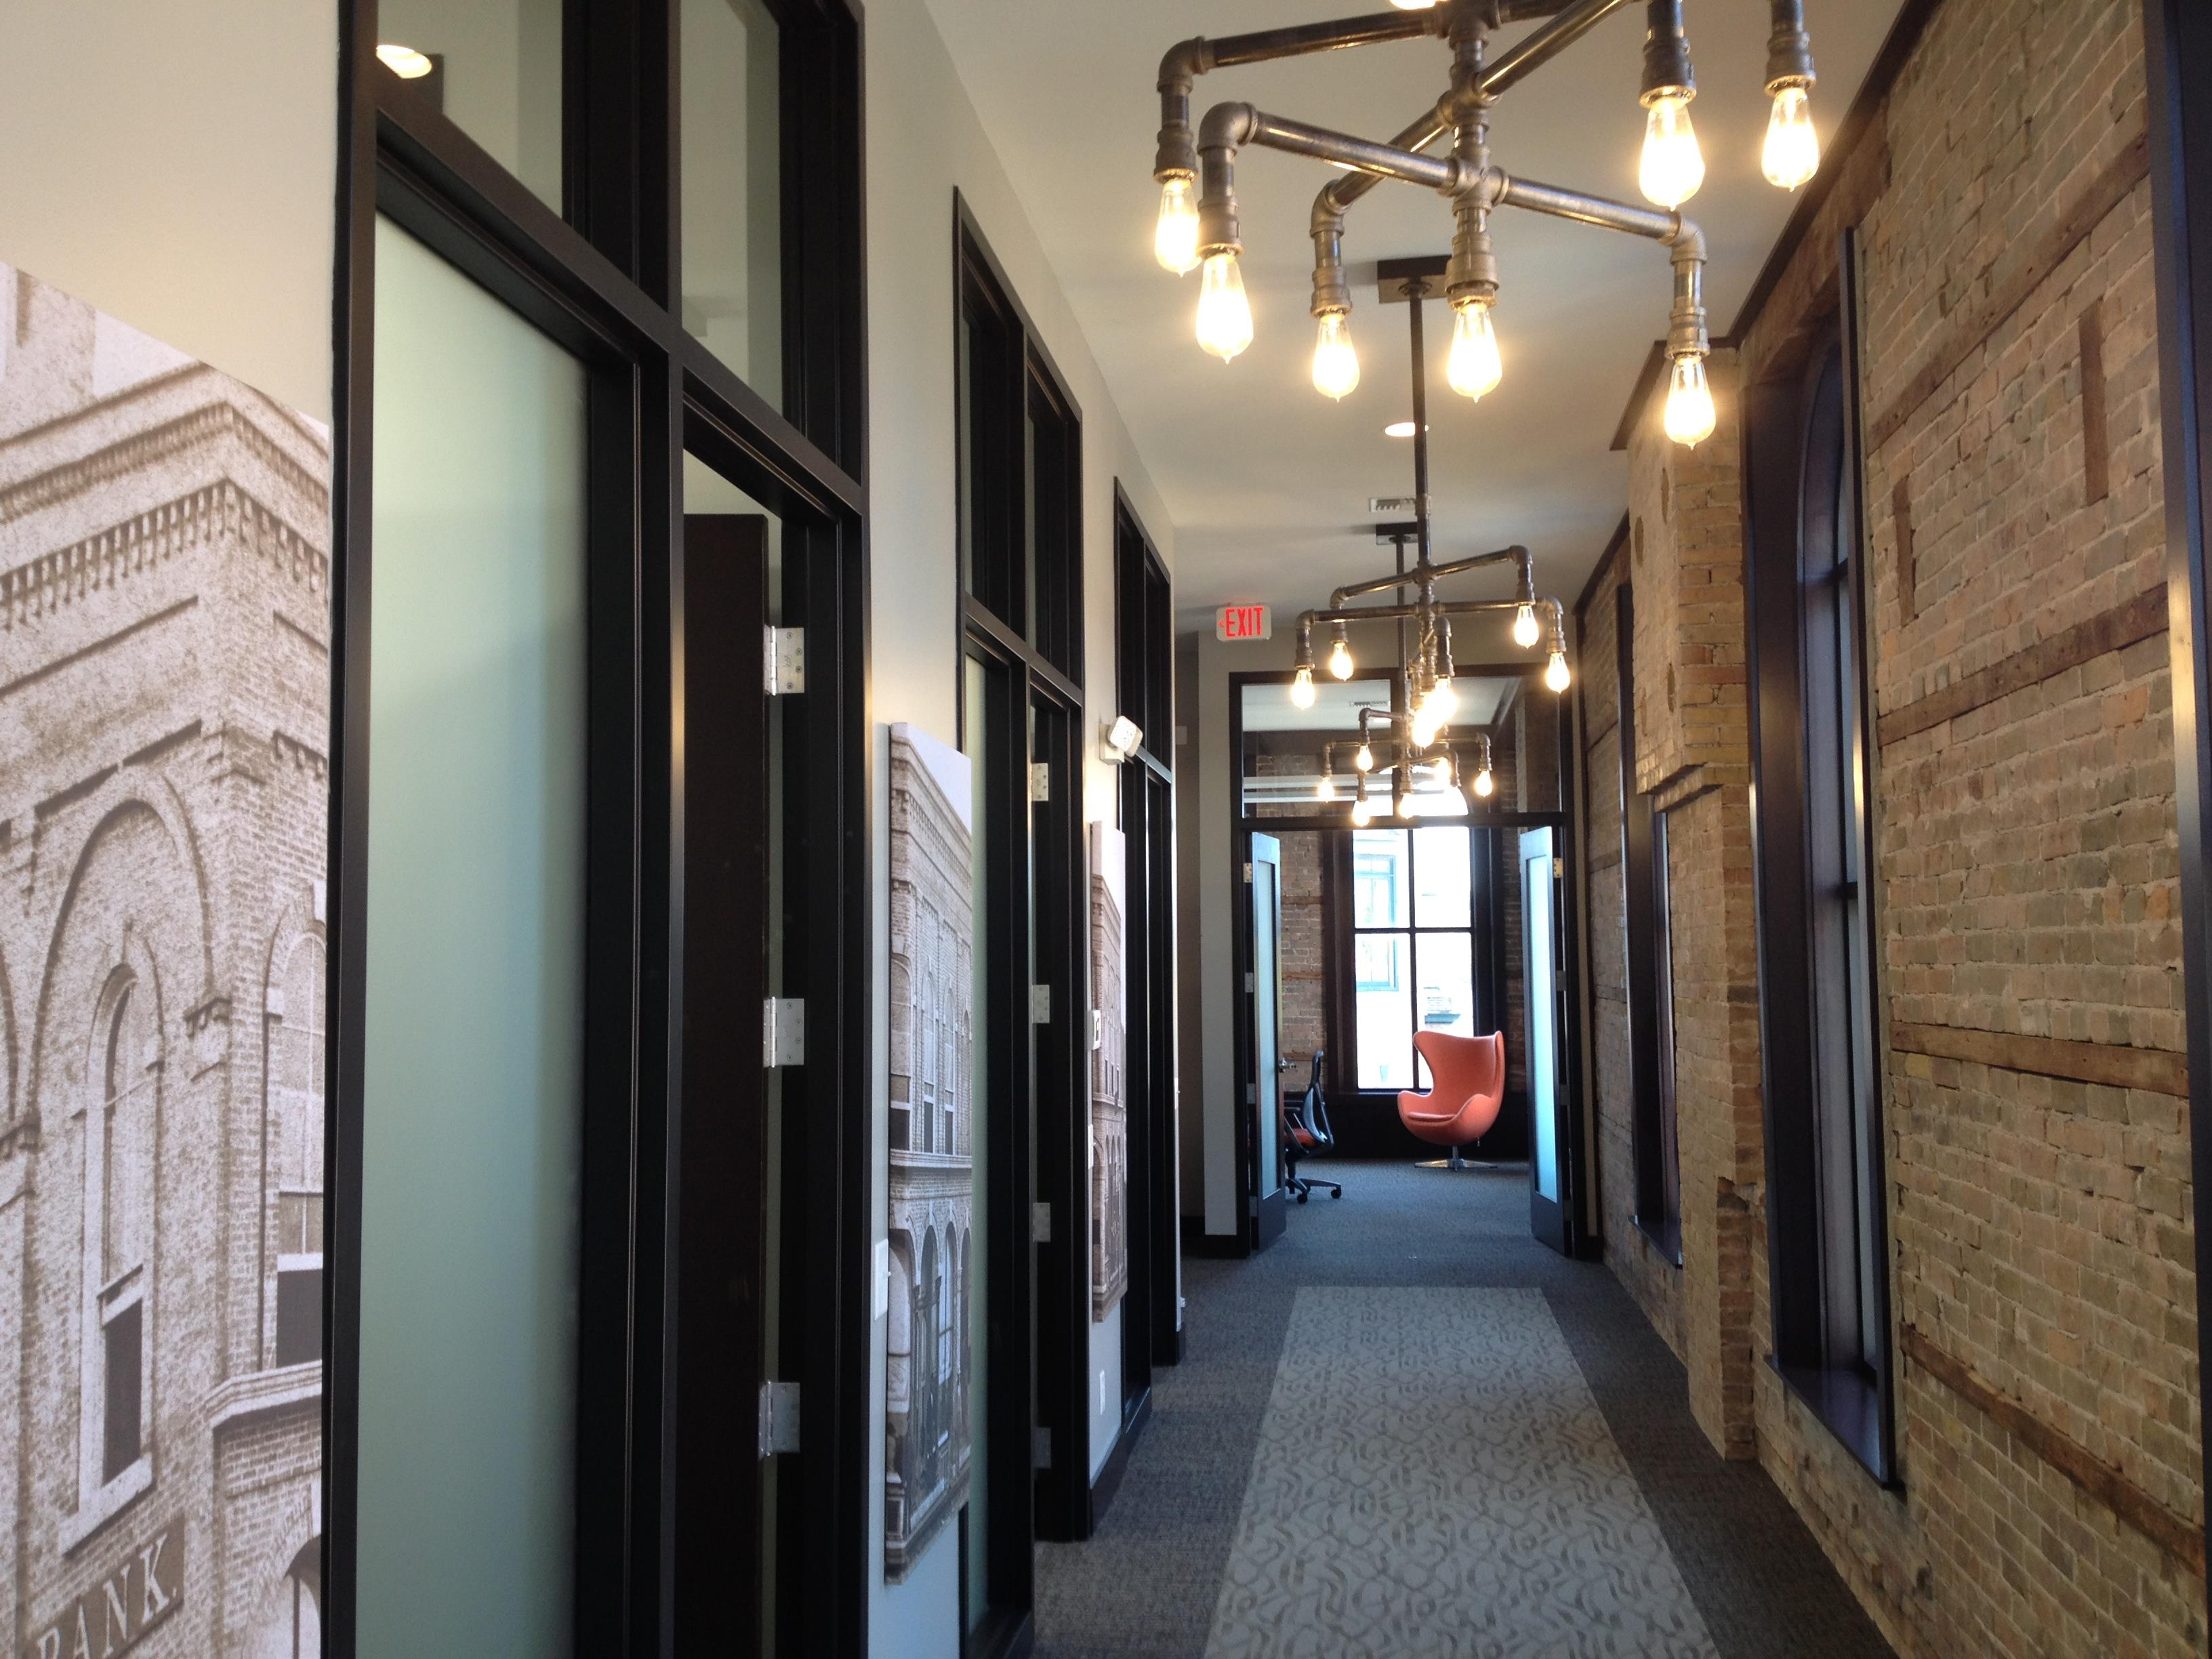 Law Office Remodel In A 100 Year Old Building | ProSource Wholesale